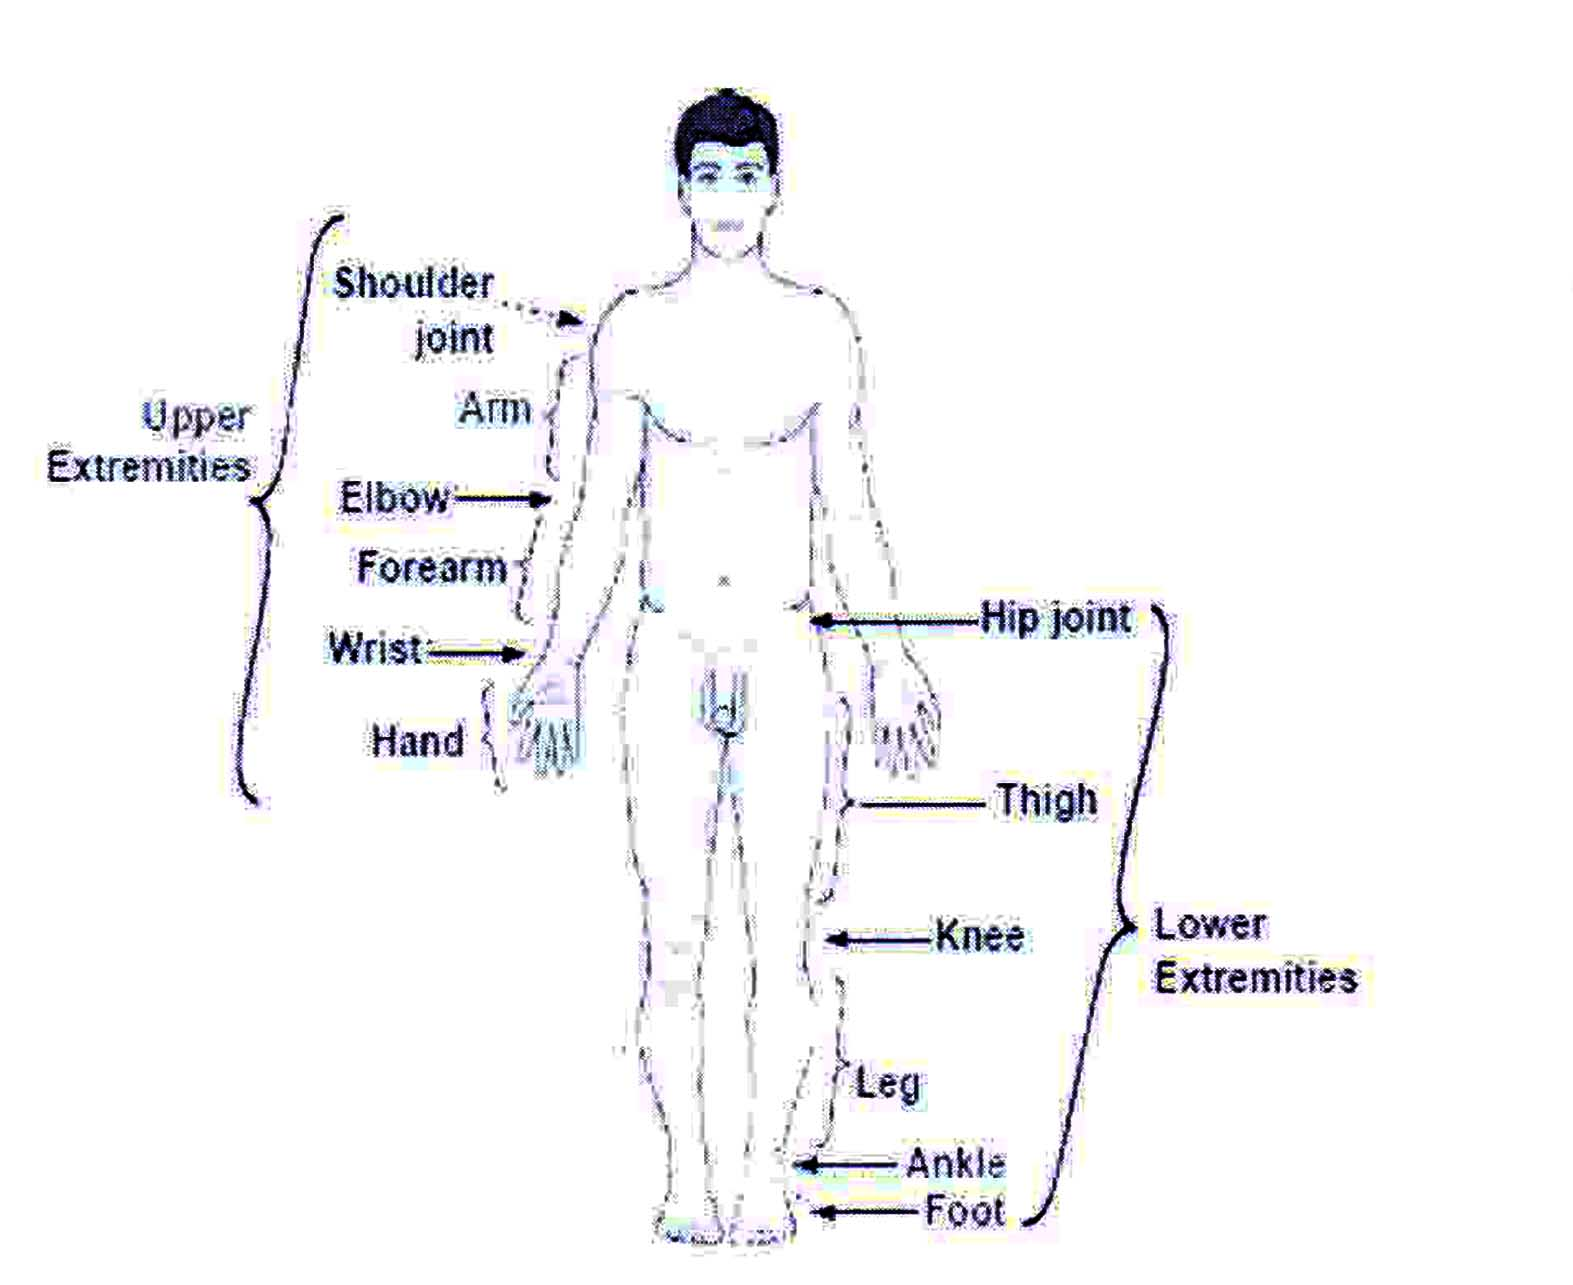 Extremities and Divisions in human body